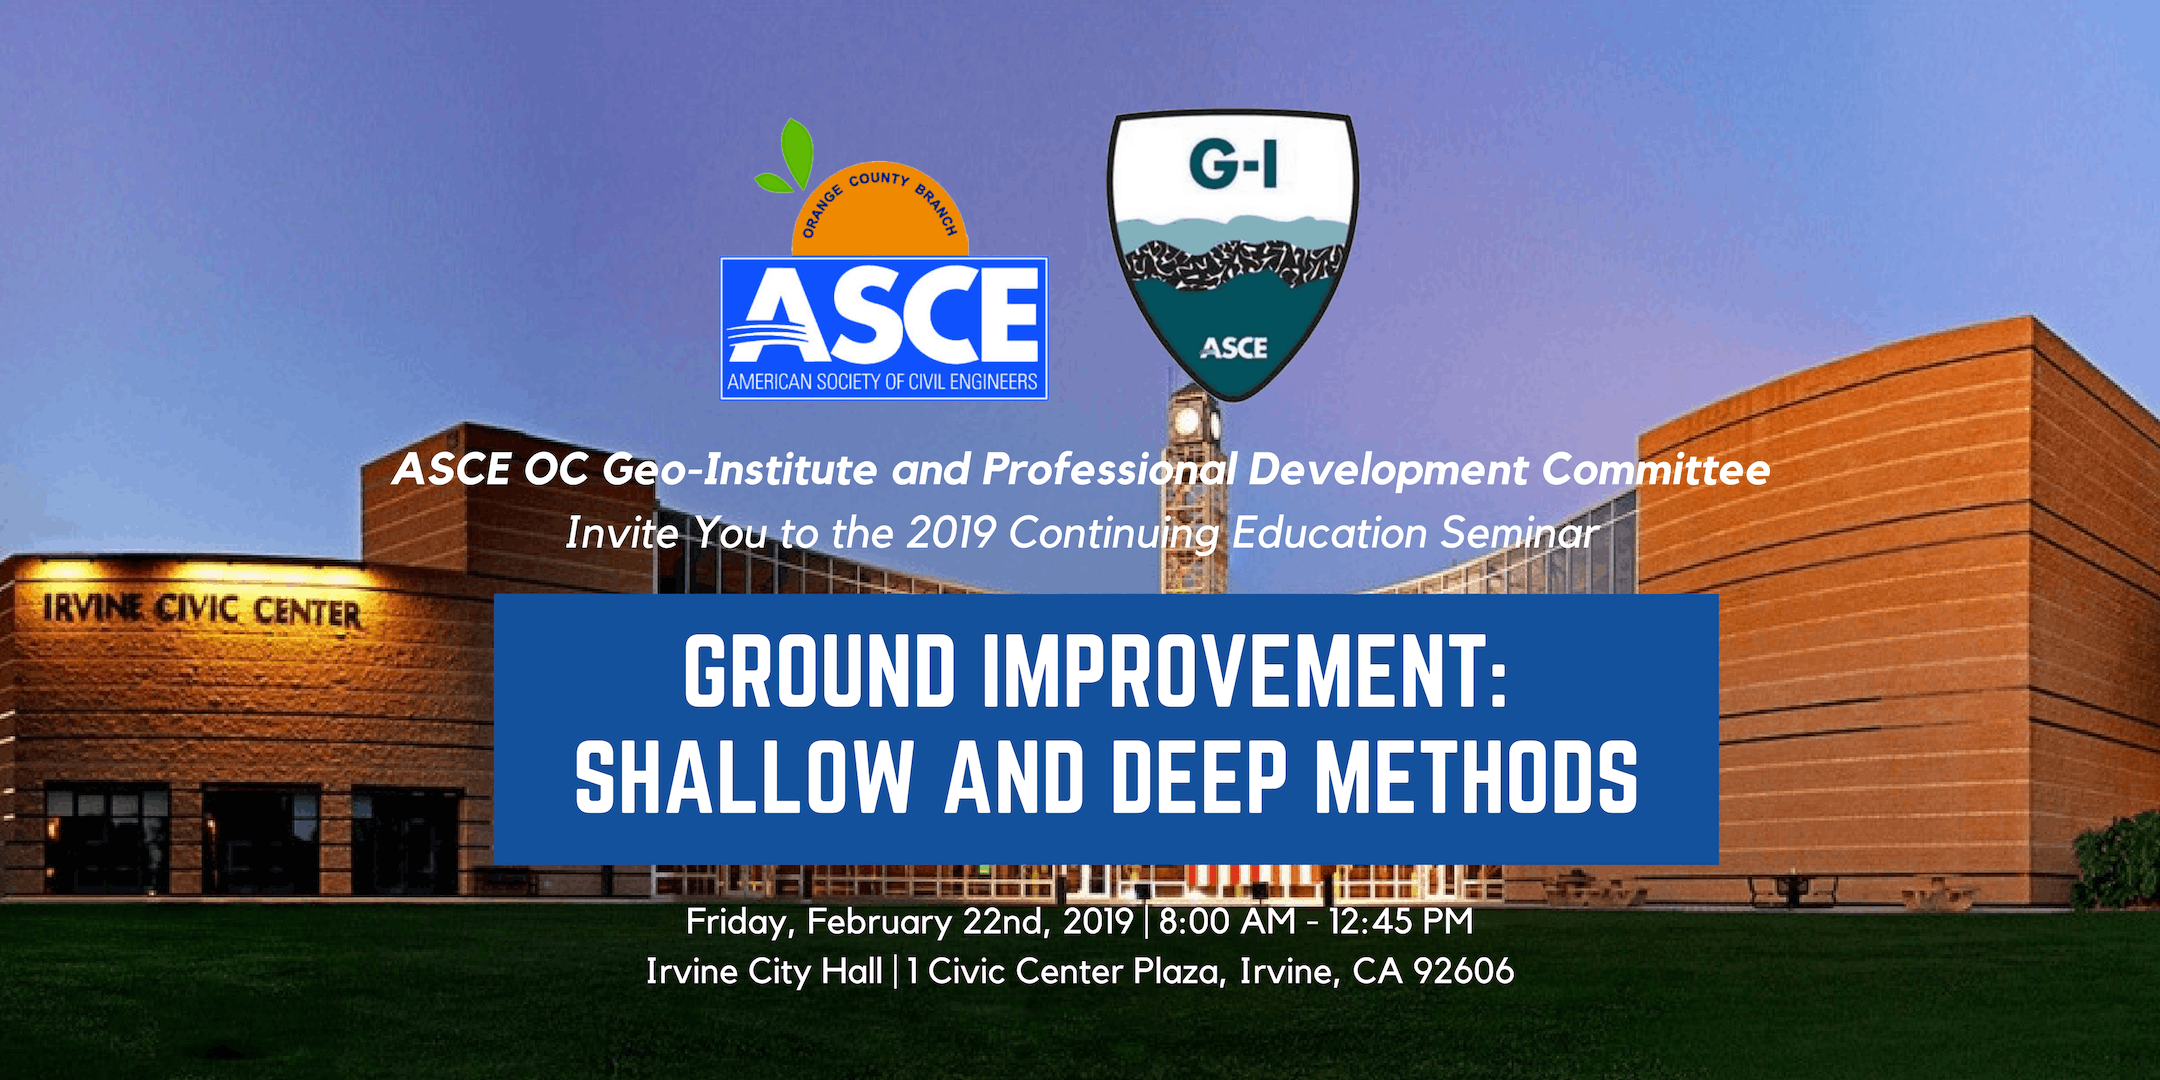 OC Geo-Institute and Professional Development